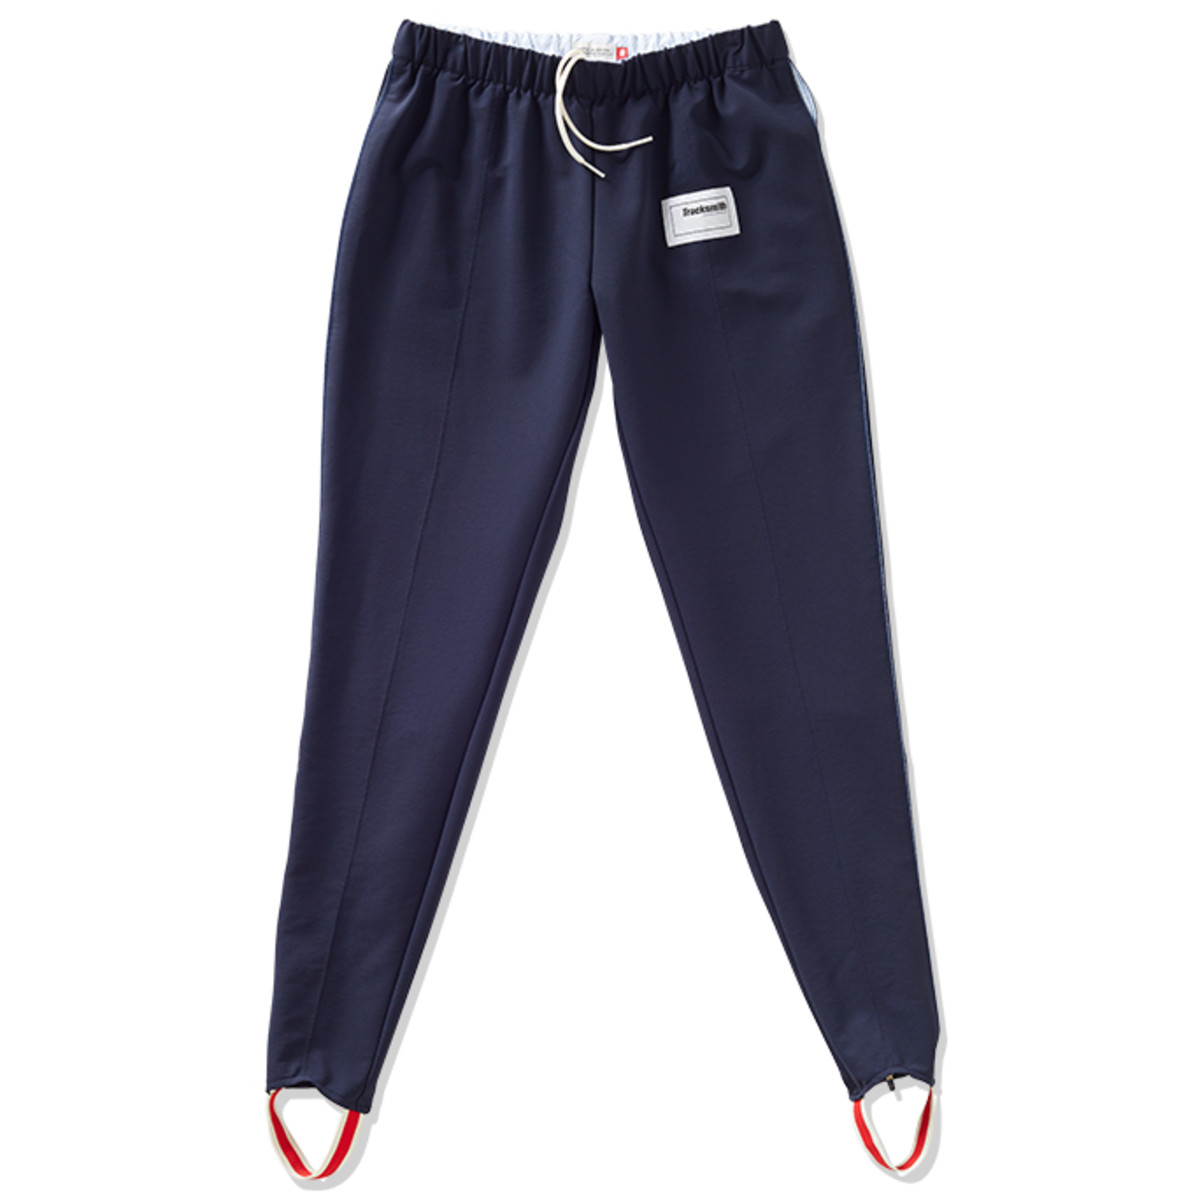 Tracksmith Women's Bislett Pants in Navy, $148, available at Tracksmith.